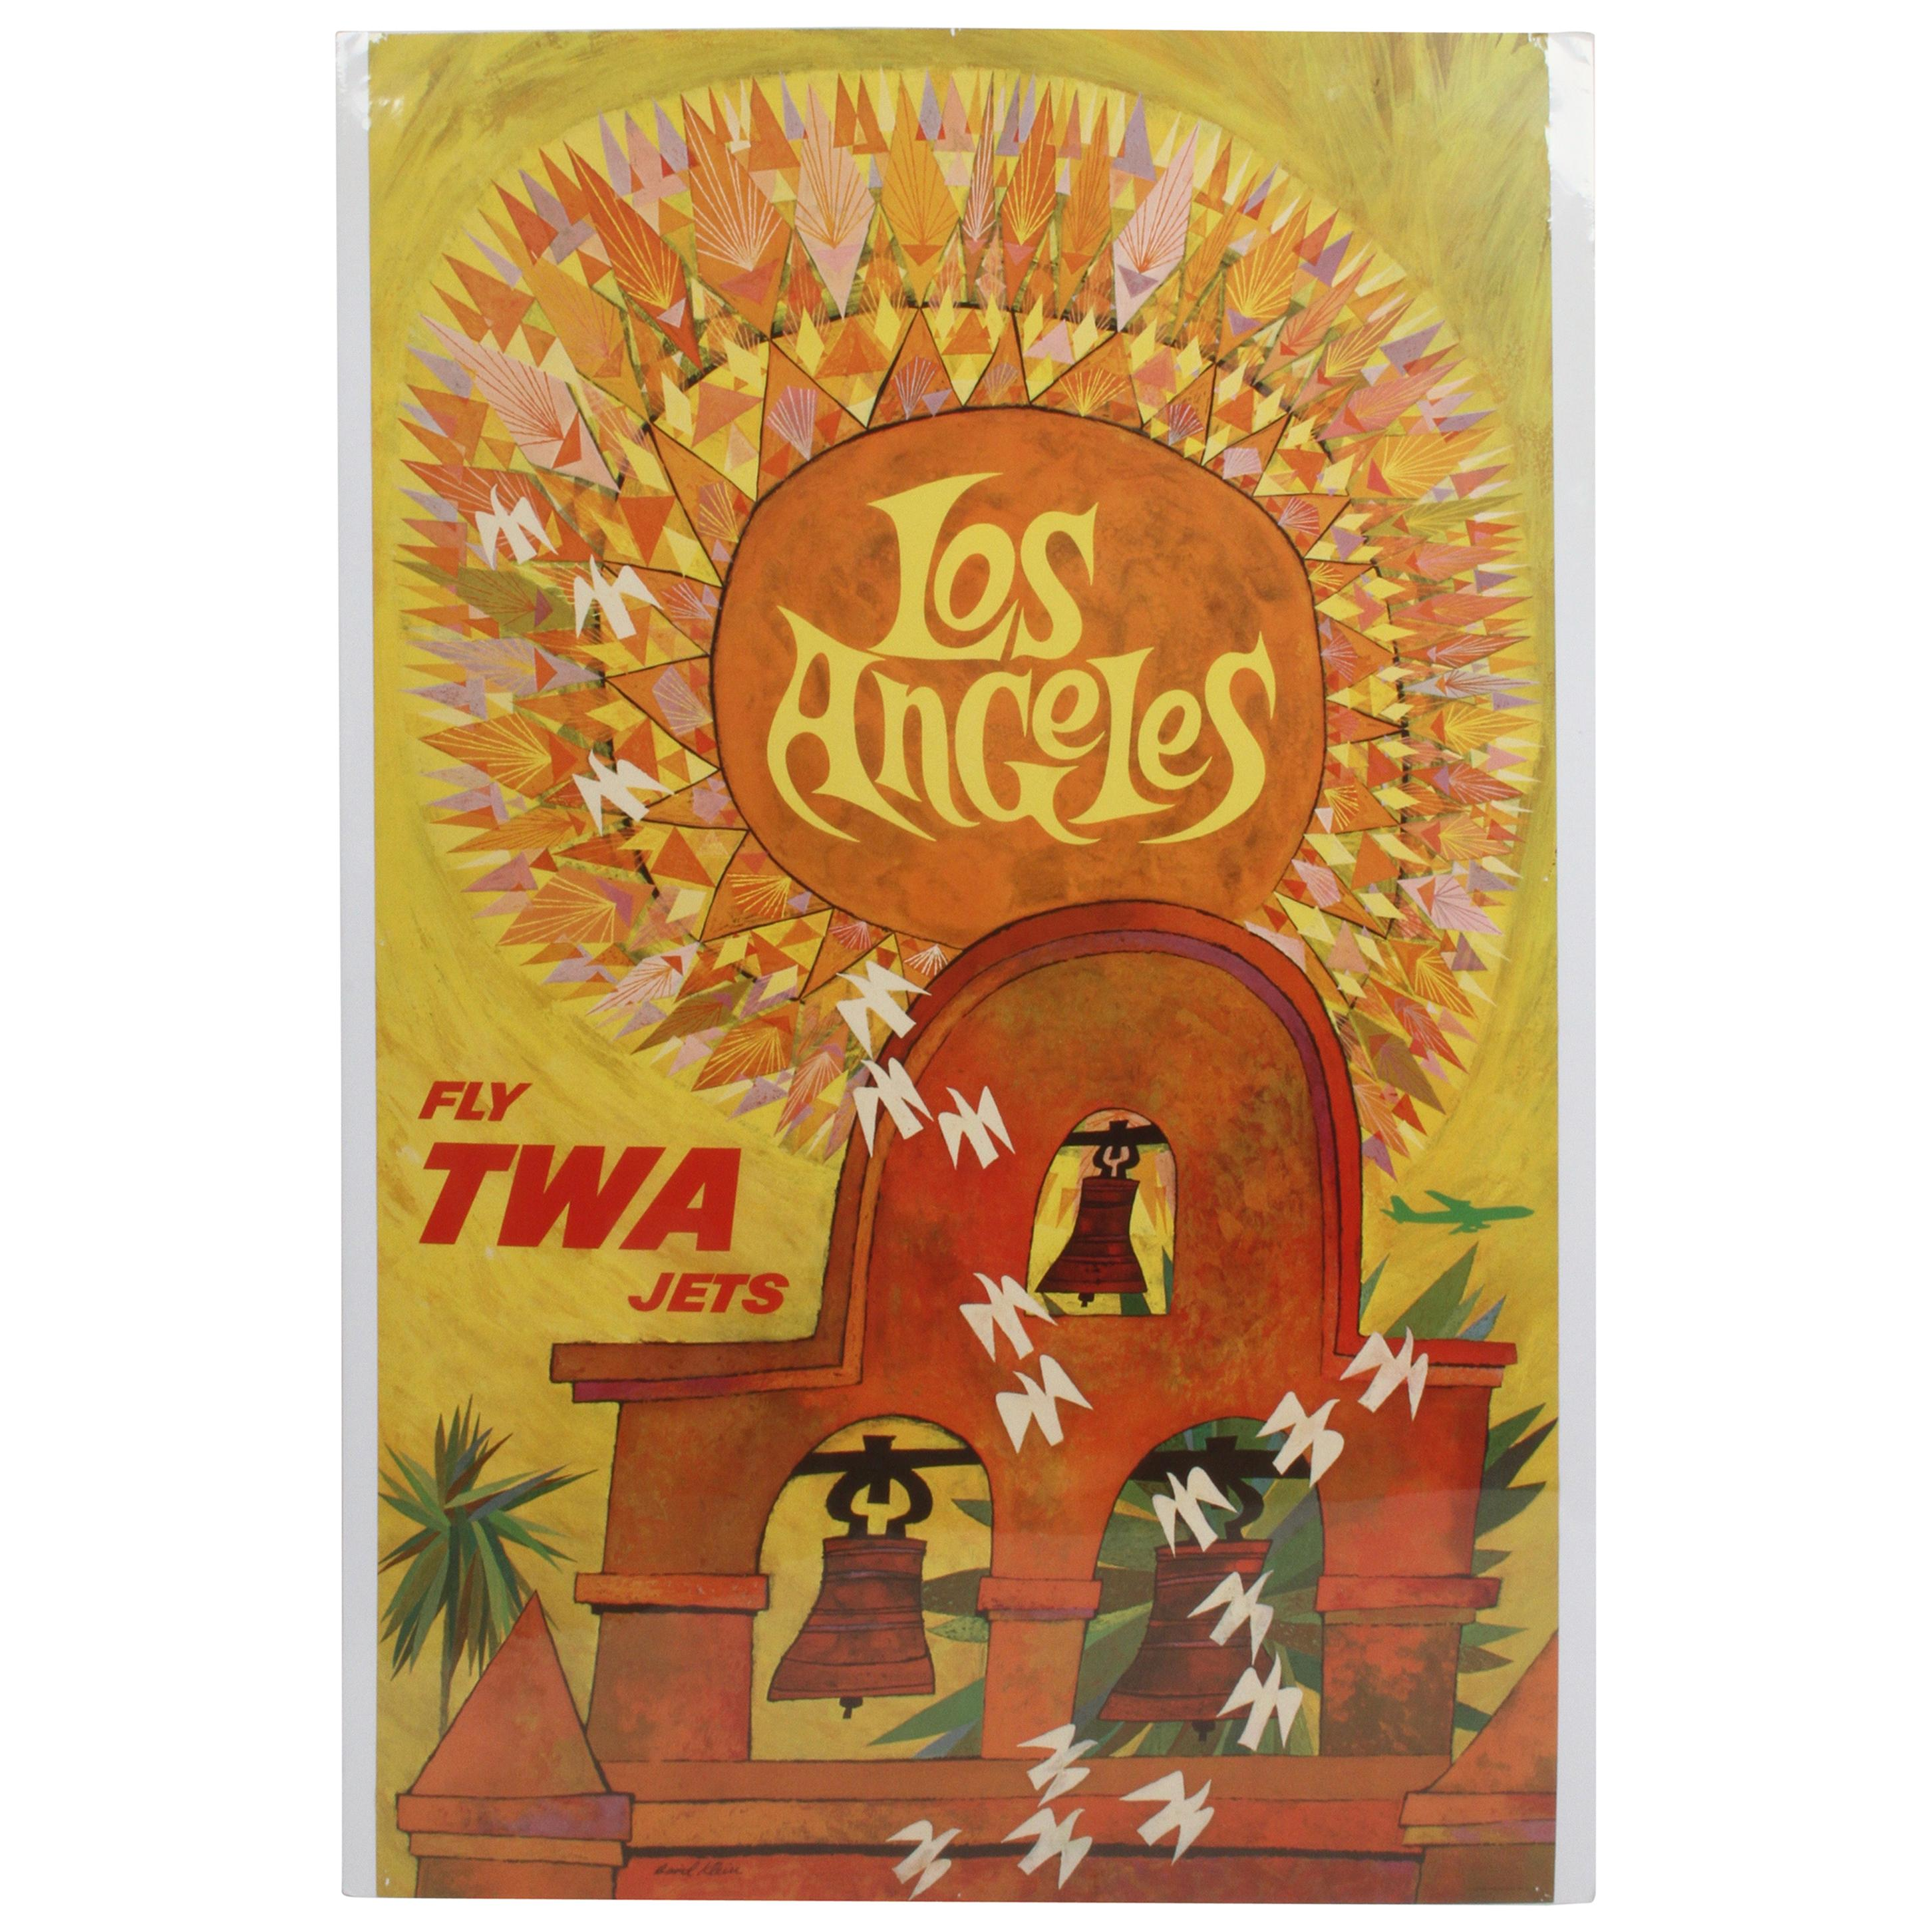 Vintage Fly TWA Airlines to Los Angles Poster by Artist David Klein, circa 1960s